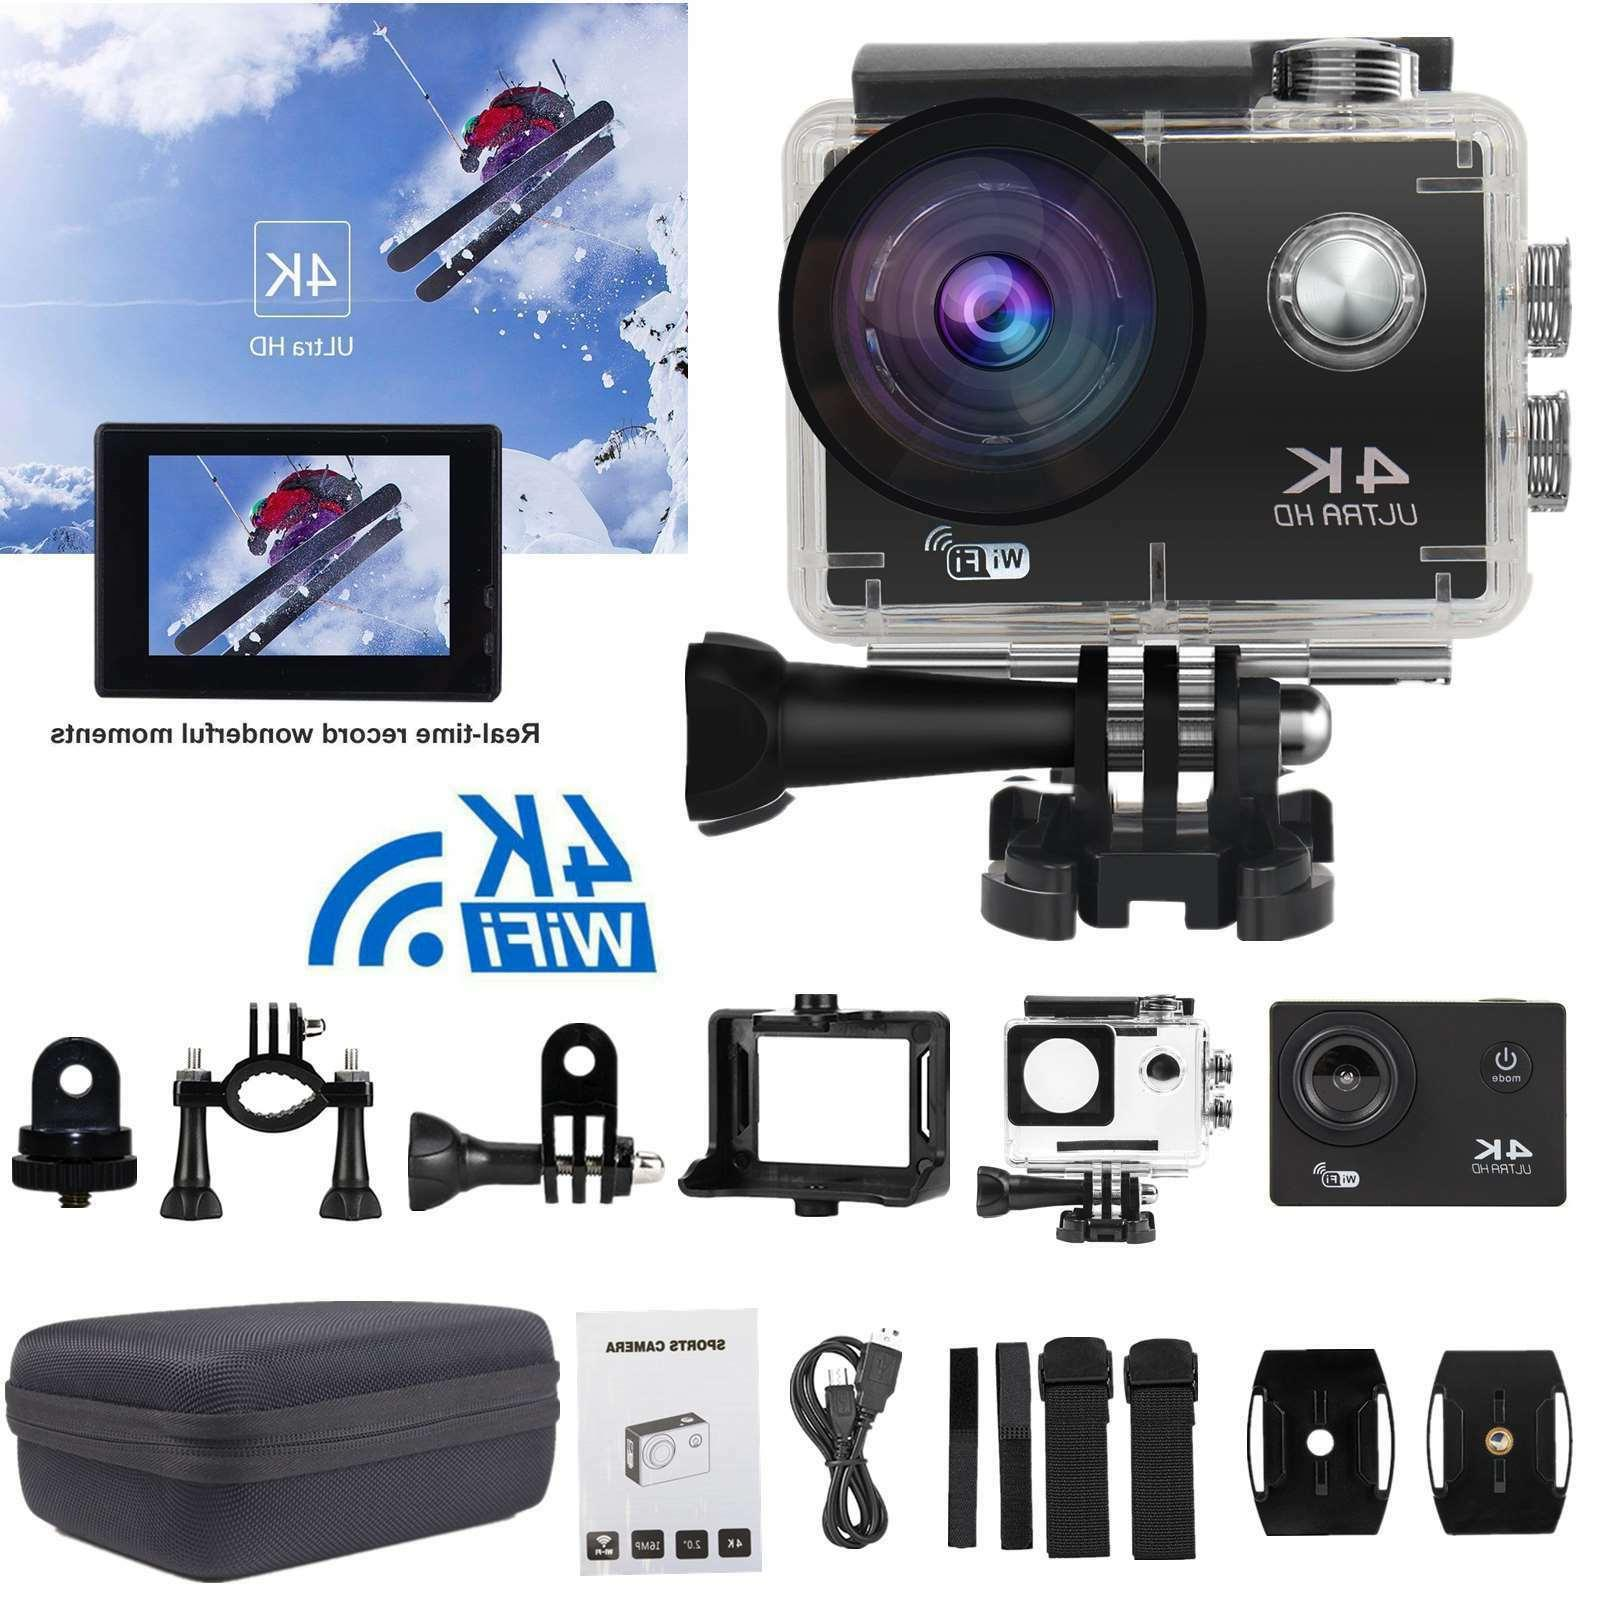 4k action camera wifi camcorder 16mp ultra